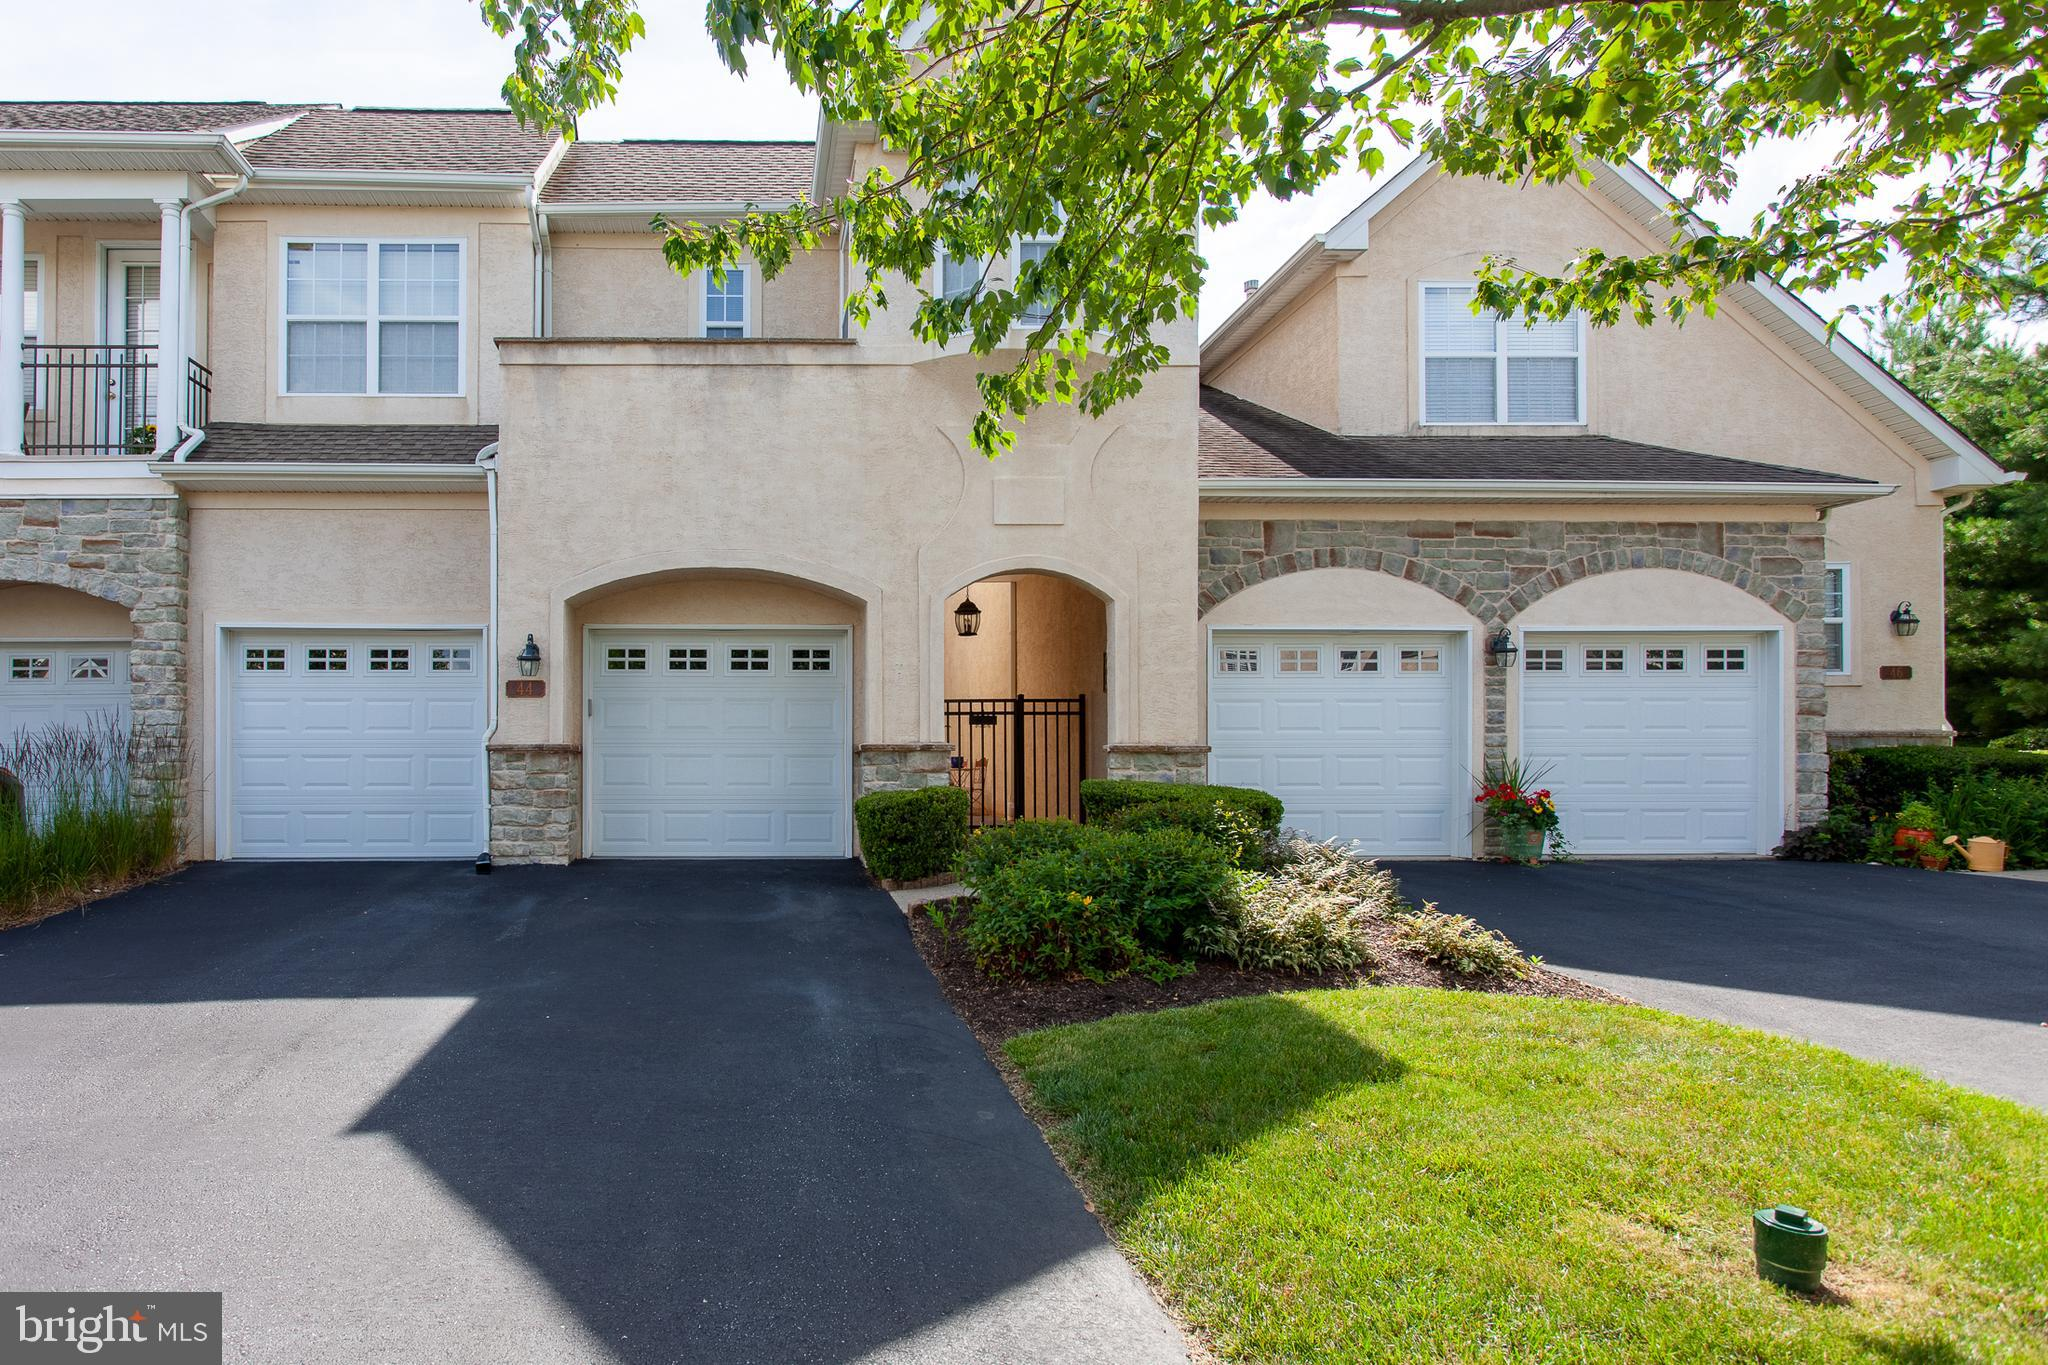 Welcome home to this beautiful Amherst model townhome in the coveted Cherry Creek Conservation Community.  This community offers a wonderful maintenance-free lifestyle, complete with low taxes and a reasonable HOA. Enter this home through the gated front courtyard with beautiful pavers and room to enjoy a quiet outdoor space.  The first floor,  with its dramatic 10-foot ceilings and gleaming hardwood floors, boasts an inviting, spacious layout with a large dining room, formal living room, and family room that share a double-sided gas fireplace, plus a beautiful gourmet eat-in kitchen with granite and Corian tops and slider access to the front courtyard.  There is also a large half bath on the first floor.  Upstairs you will find a very unique owner's suite, accessed through elegant double doors and including a beautiful bedroom with tray ceiling, two large walk-in closets with built-in organizers, a separate office space, and a luxurious owner's bath.  Two additional spacious bedrooms, a second full bath, and a conveniently located laundry room complete the second floor.  The finished lower level includes a large entertaining space with a wet bar, a third full bath, a flexible bonus room suitable for many uses, plus that all-important storage space.   This home also offers a new HVAC system (installed 2020), a two-car garage, and a deck that backs to open space.   An invasive stucco test was completed and minor repairs made in mid- 2017.  The Home Owners Association covers roof/gutter/downspout maintenance.  Cherry Creek features 80 acres of protected open space and walking trails, as well as very easy access to all the area hotspots including West Chester, Kennett Square, Wilmington, and the airport via Routes 1, 202, and 322.  All this plus the highly regarded West Chester Area School District make 44 Barn Drive a must-see!